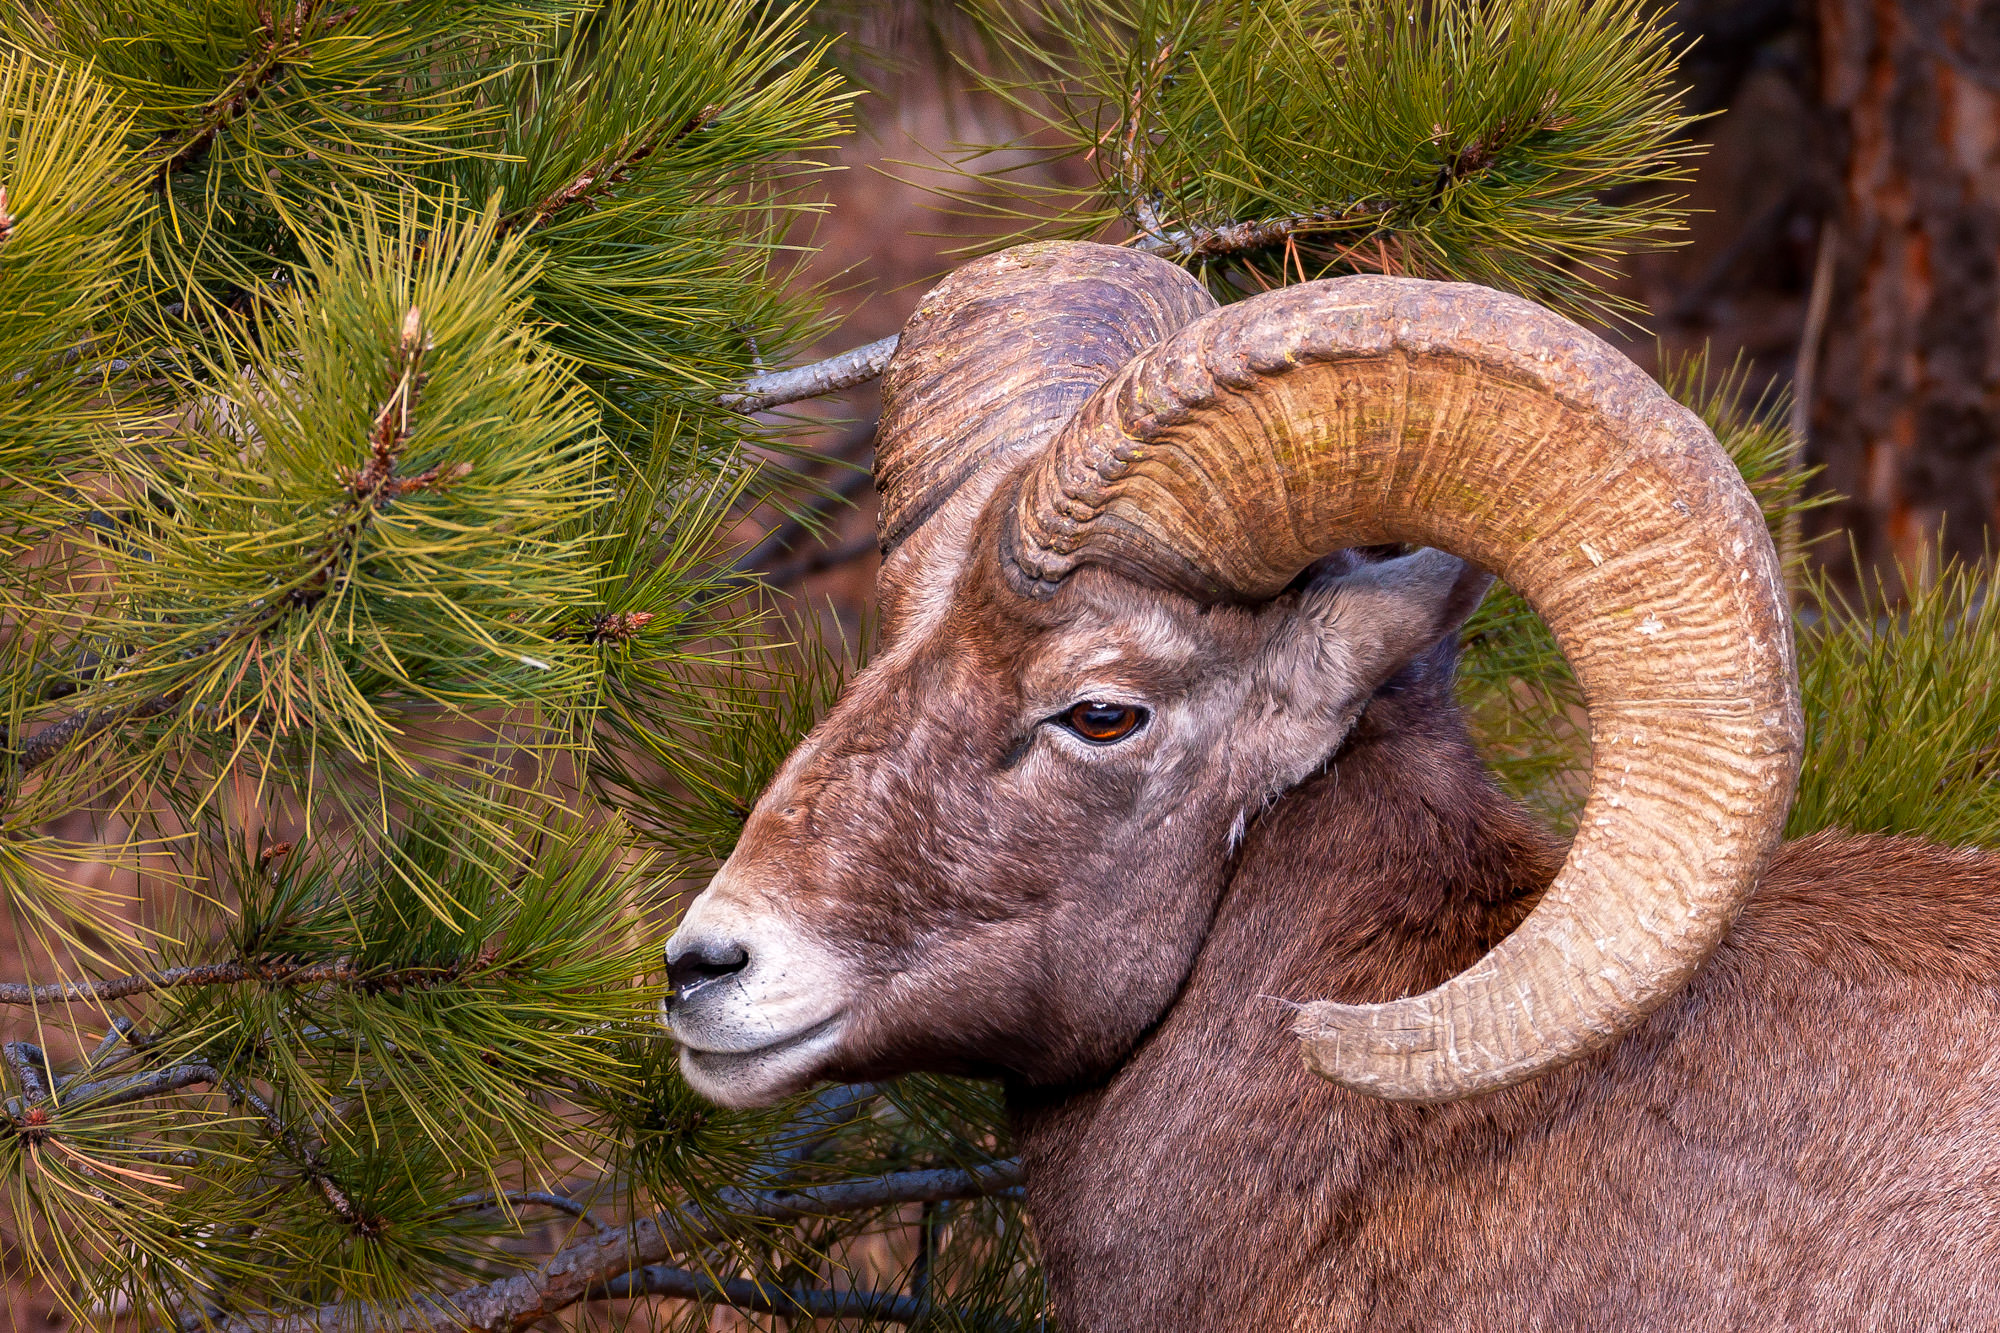 Bighorn, Sheep, Ram, Colorado, limited edition, photograph, fine art, wildlife, photo